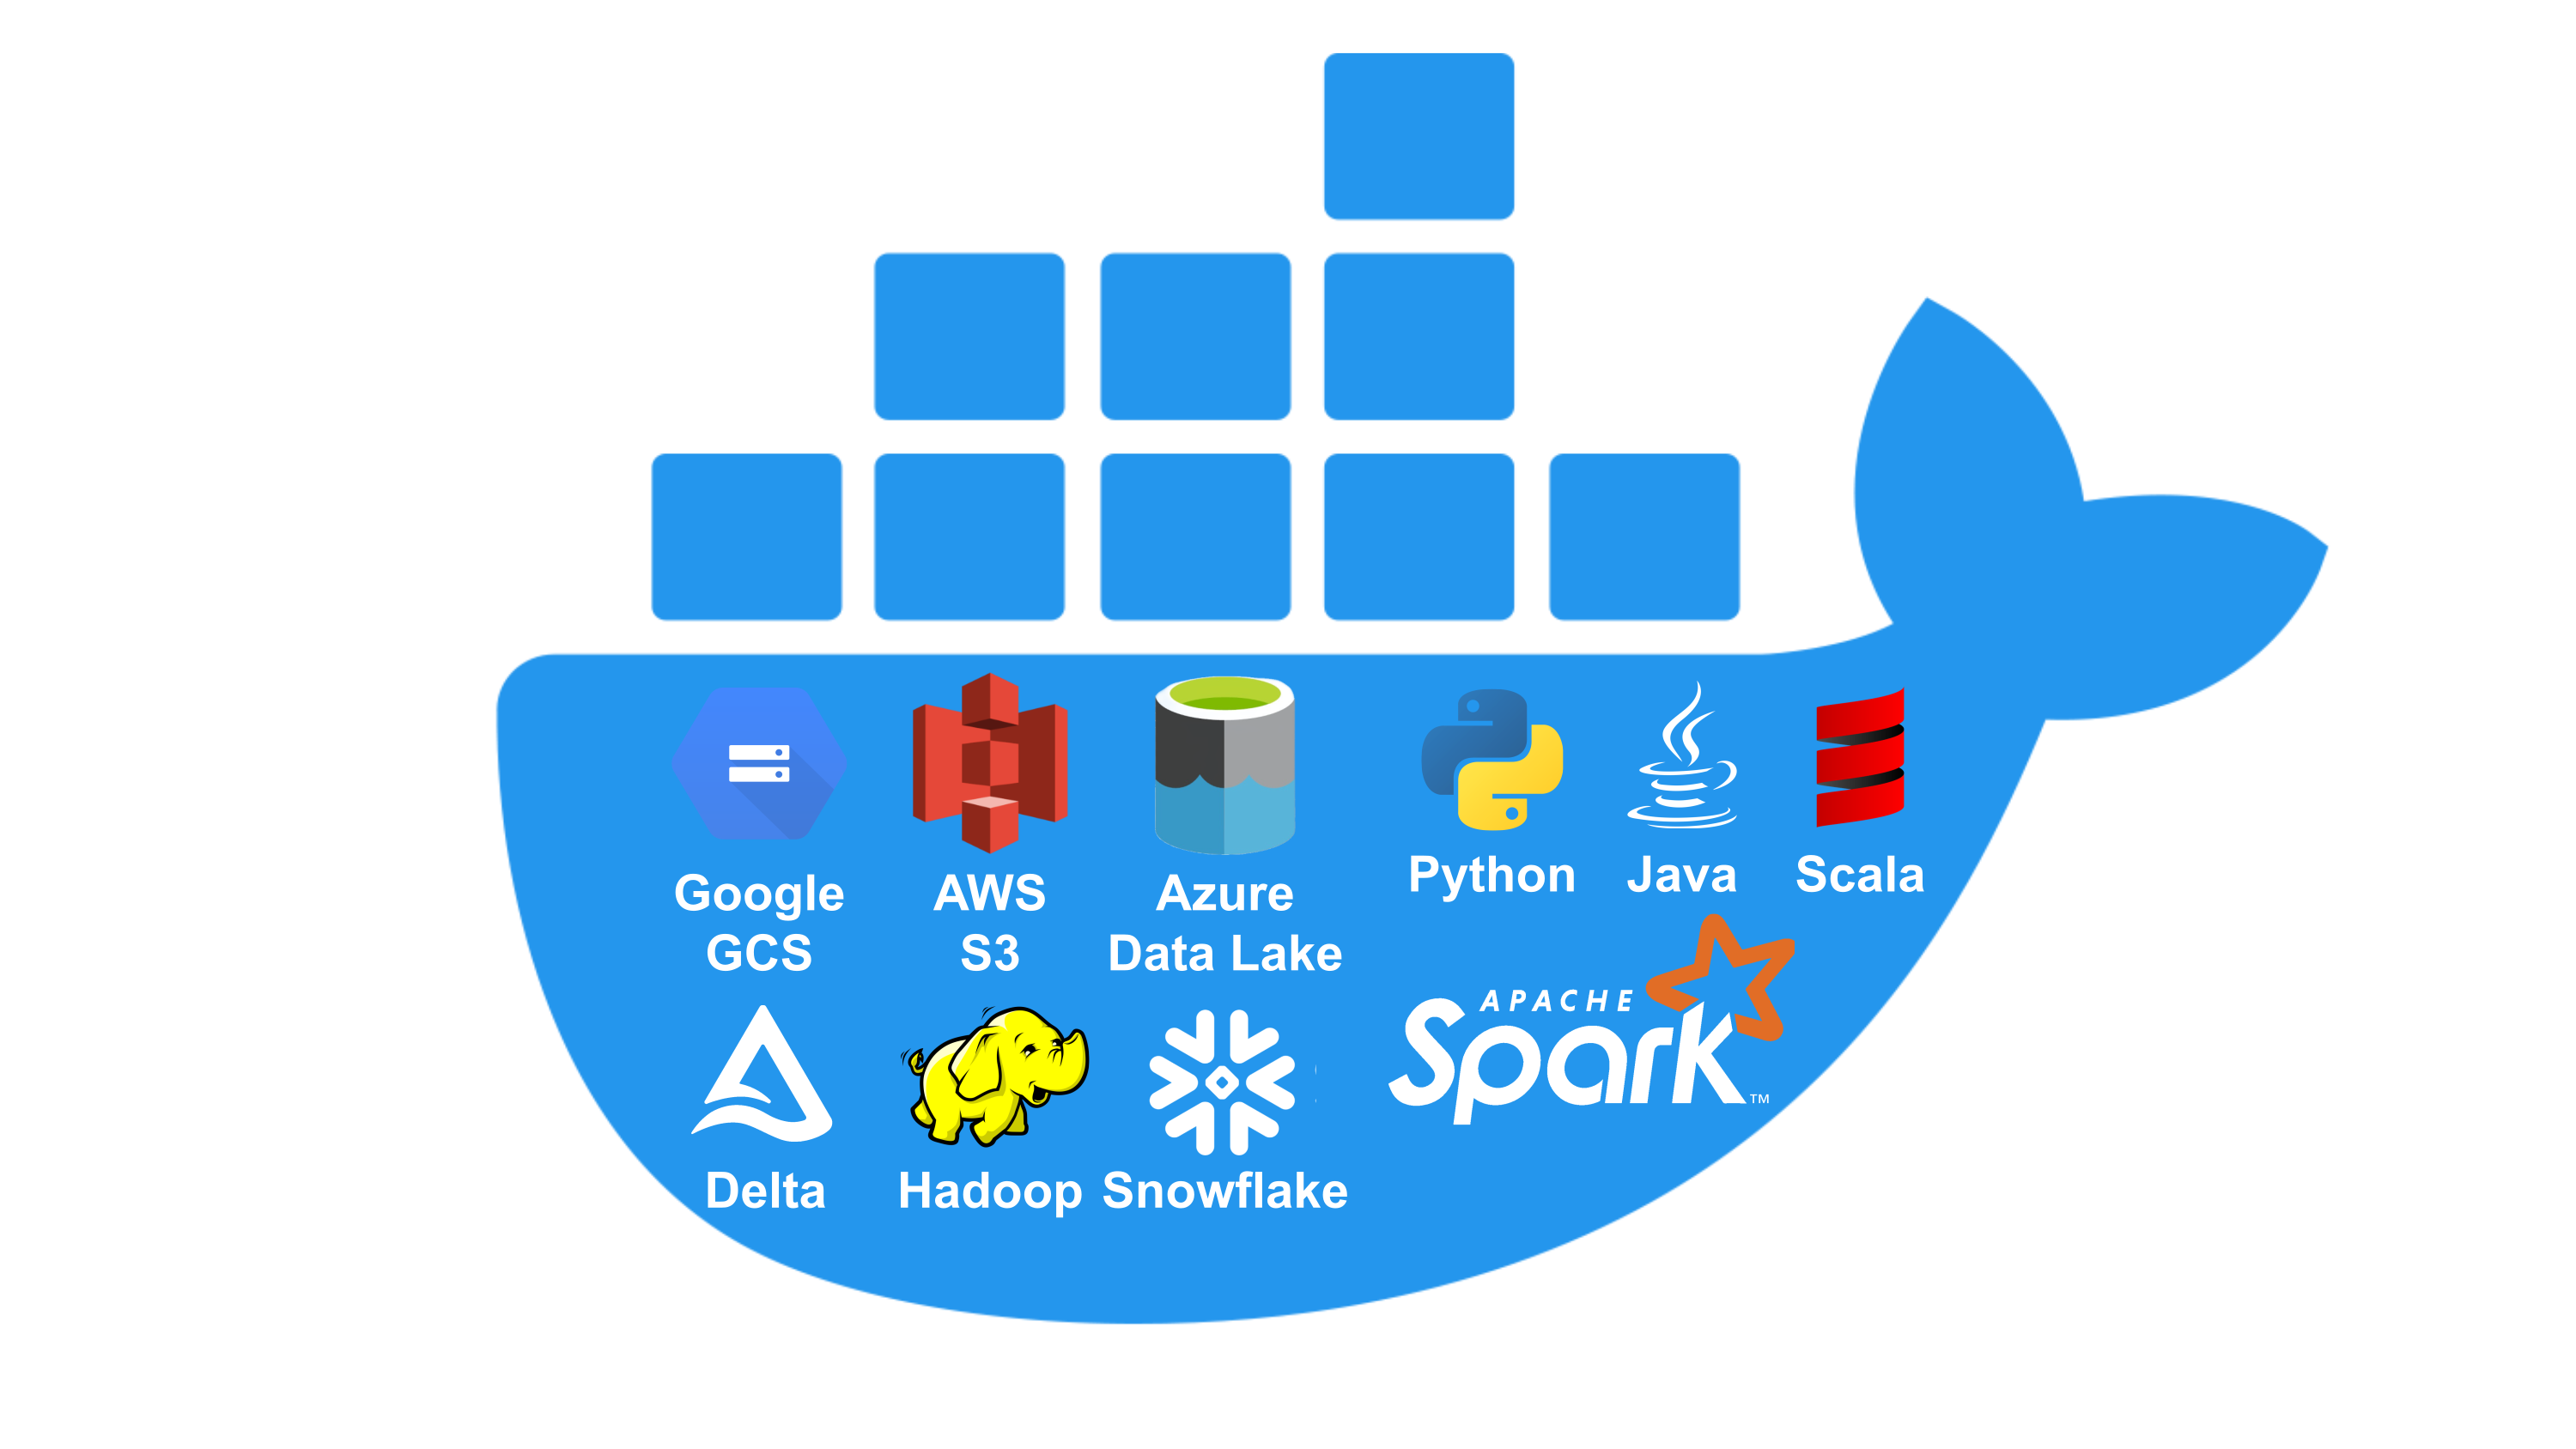 Optimized Docker Images for Spark